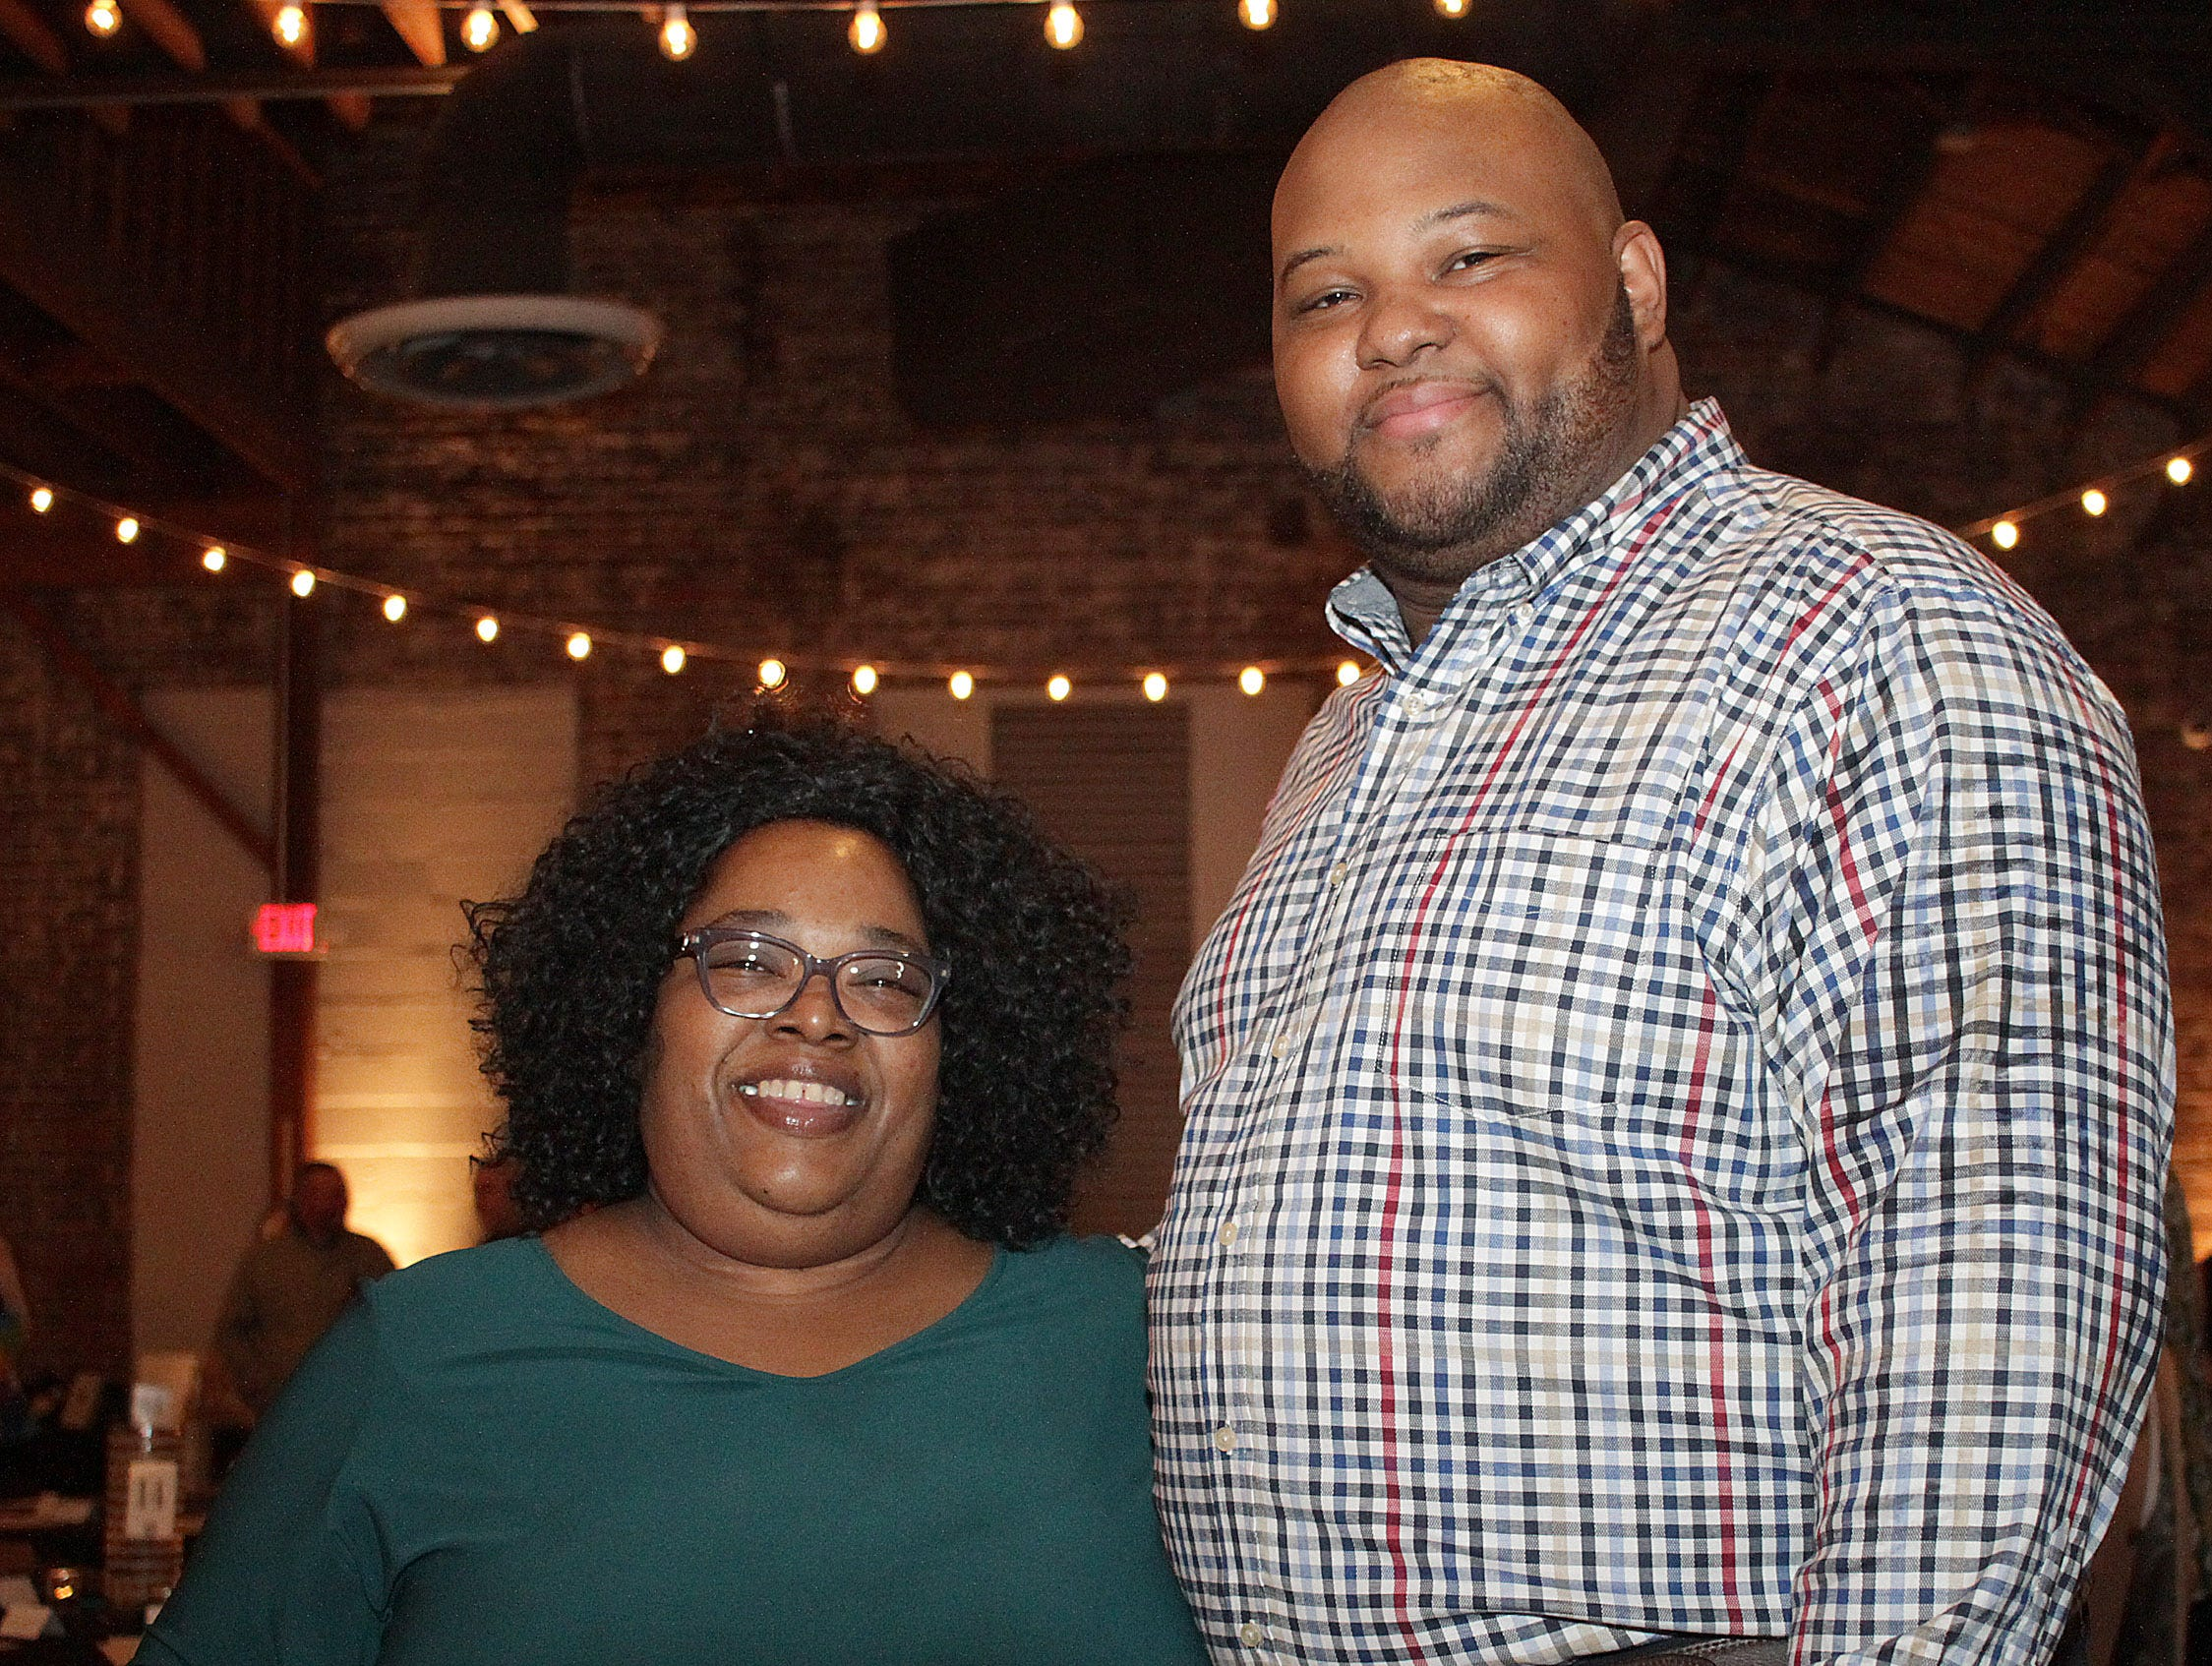 Alvita Halcomb and Steven Carter at the Green and Gold Gala benefitting Gallatin HIgh School on Saturday, March 9, 2019.